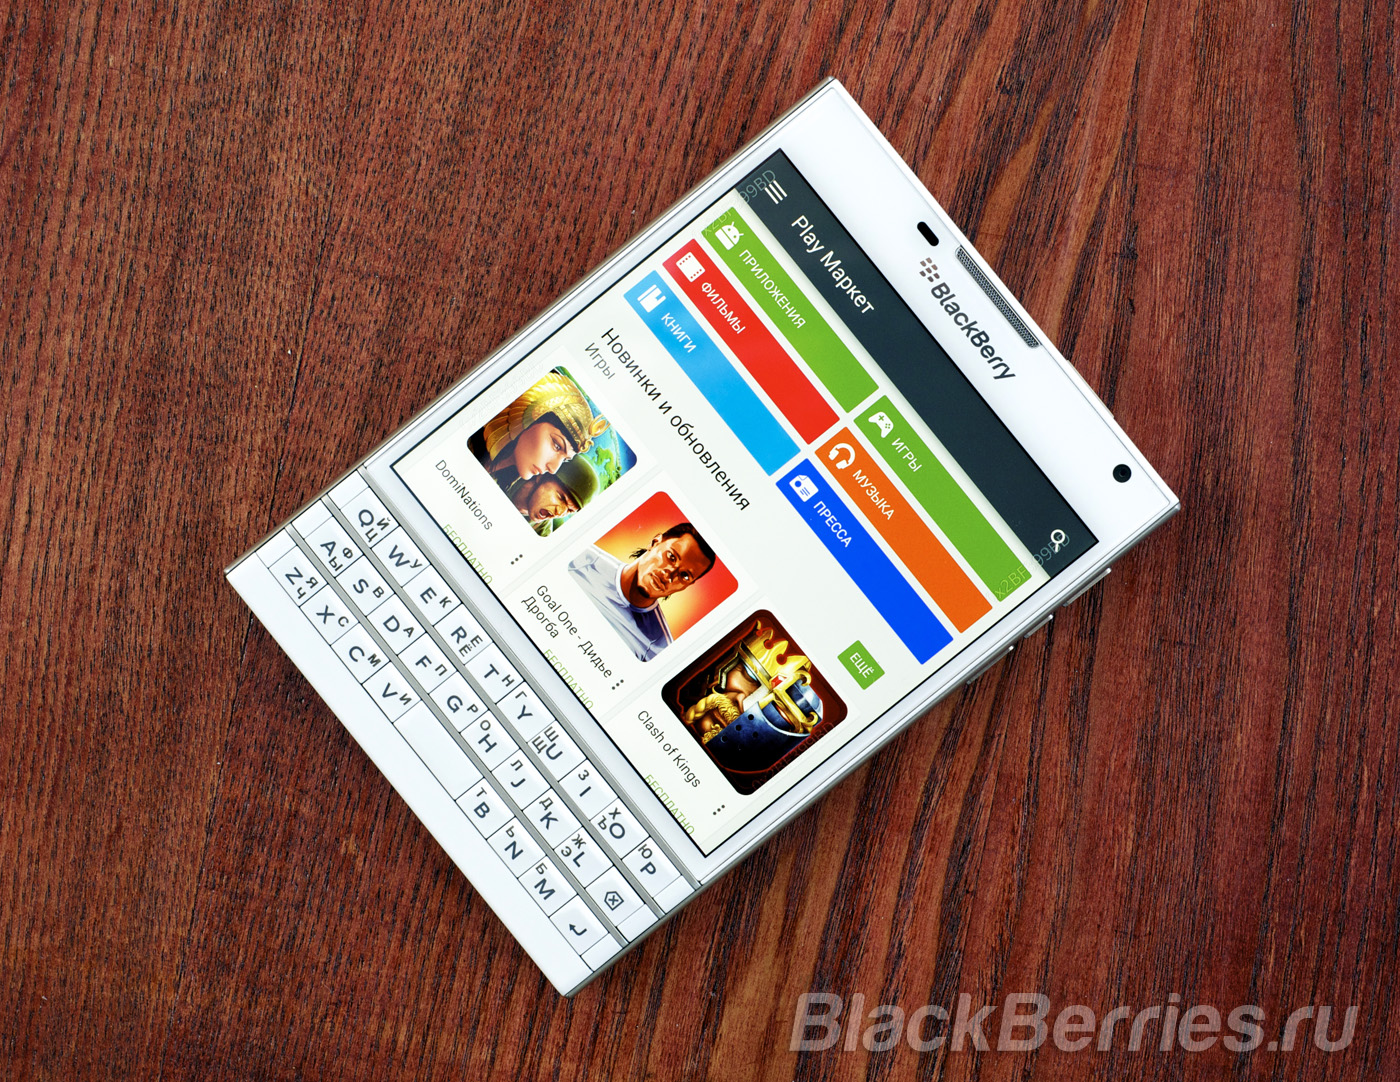 BlackBerry-Passport-Google-Play-1